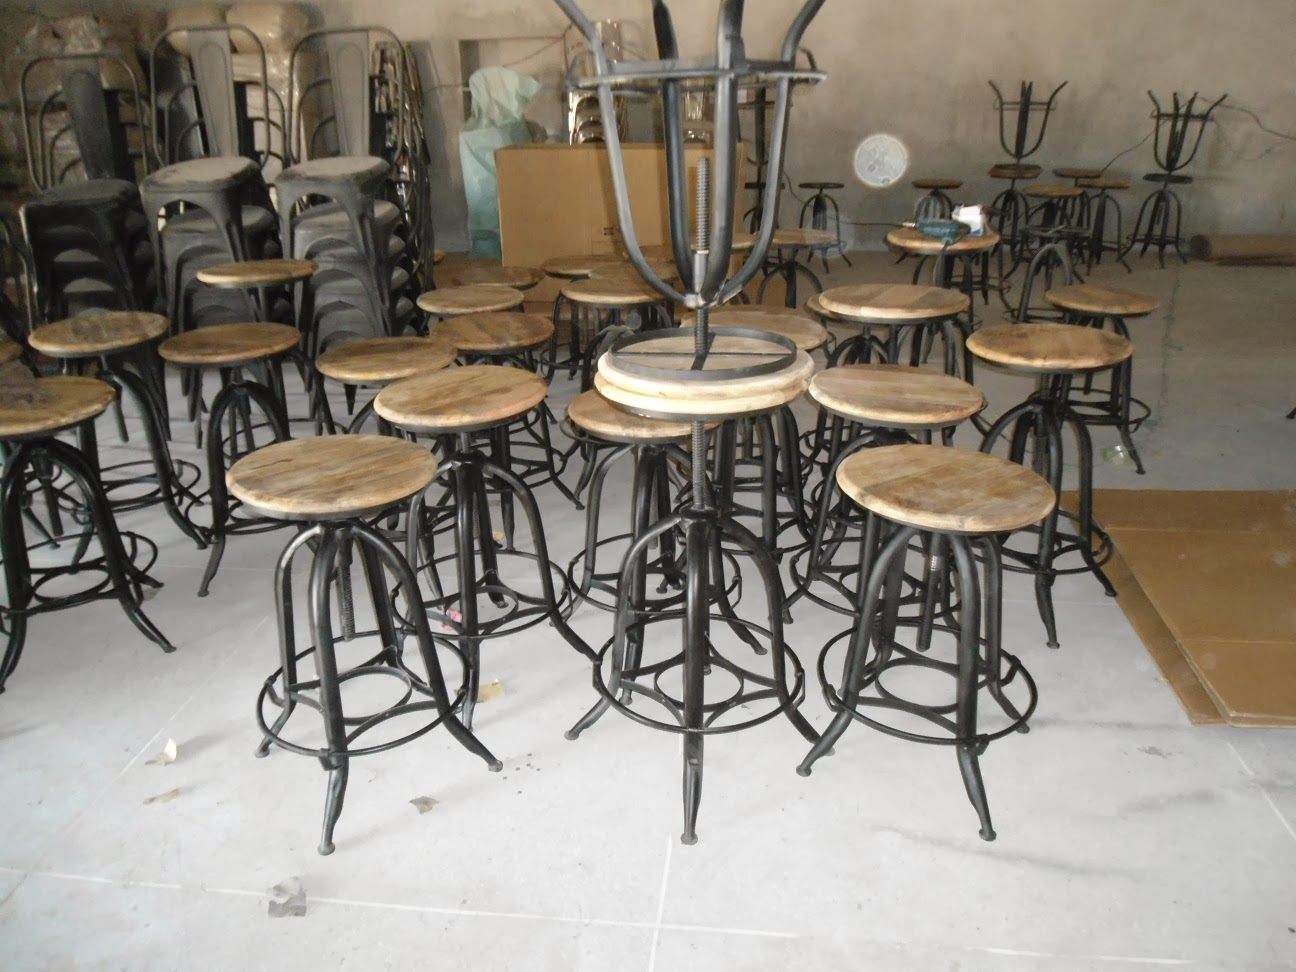 Indian Furniture Vintage Industrial Furniture Manufacturing